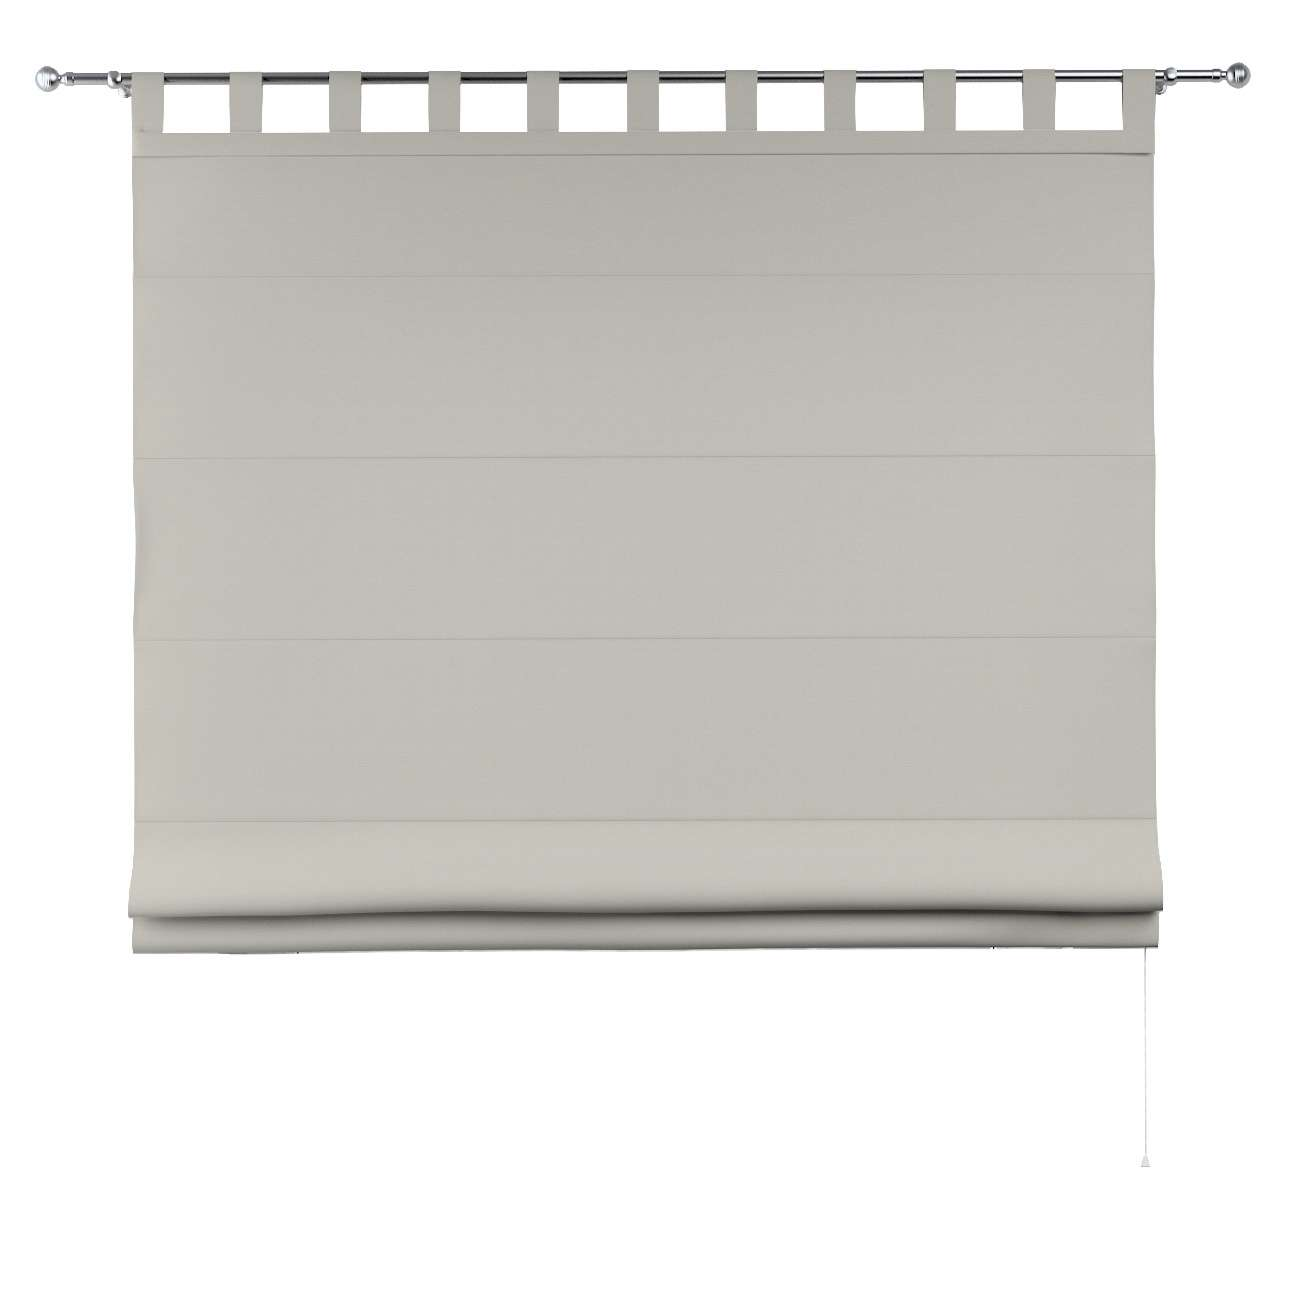 Oli tab top roman blind in collection Cotton Story, fabric: 702-31